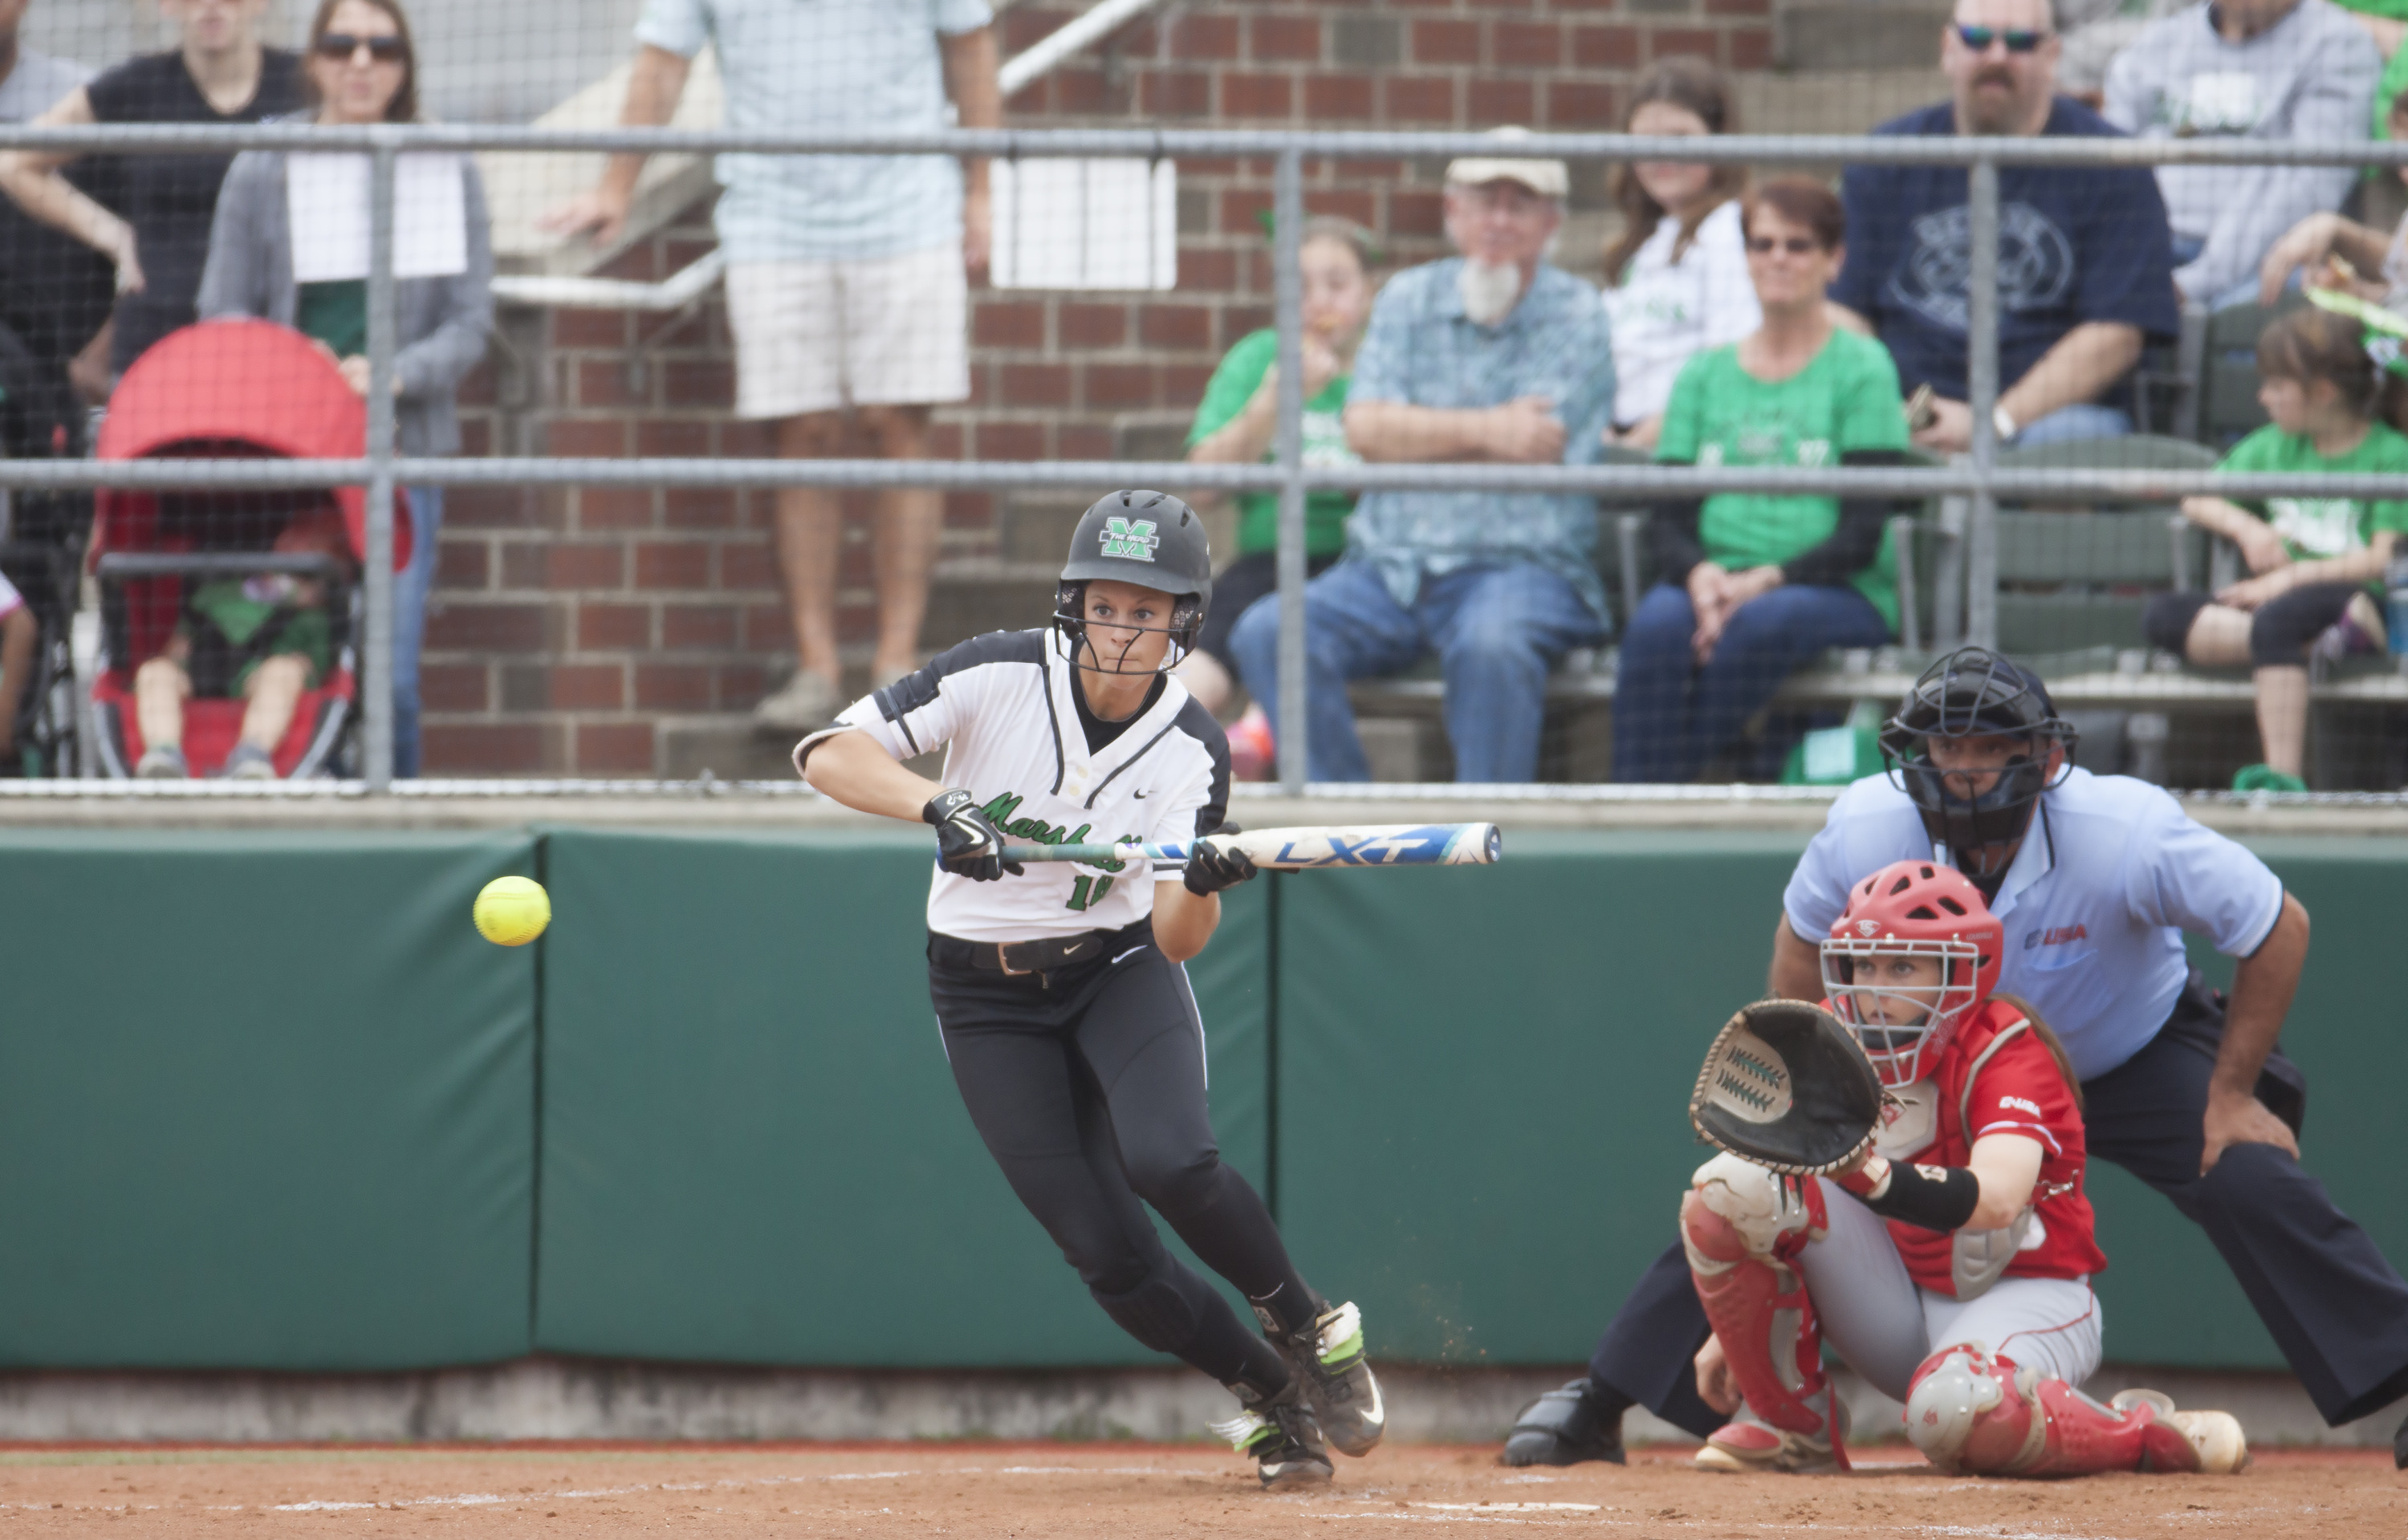 Senior Morgan Zerkle drove in five runs combined during the two wins over Wright State.